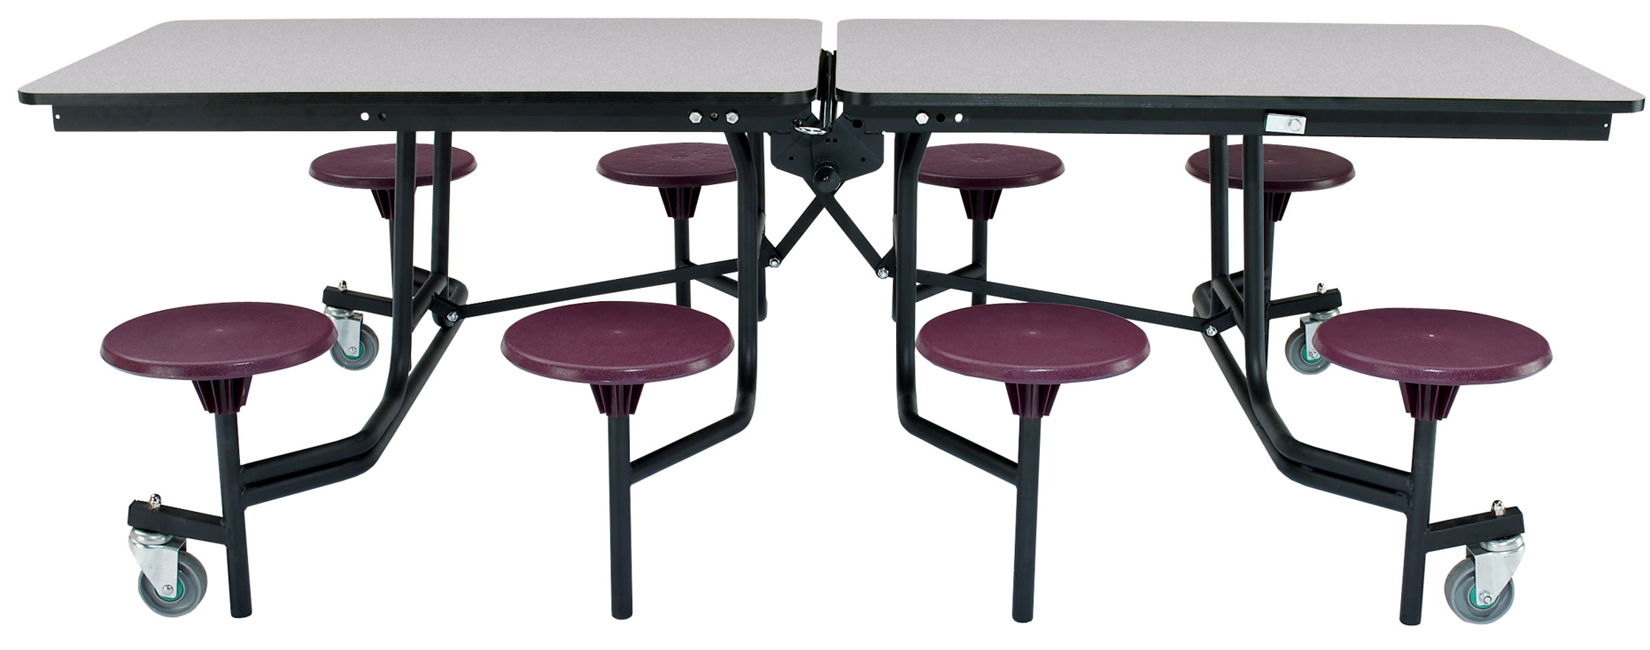 mts-8-pbtmpc-mobile-stool-cafeteria-table-w-t-mold-edge-8-l